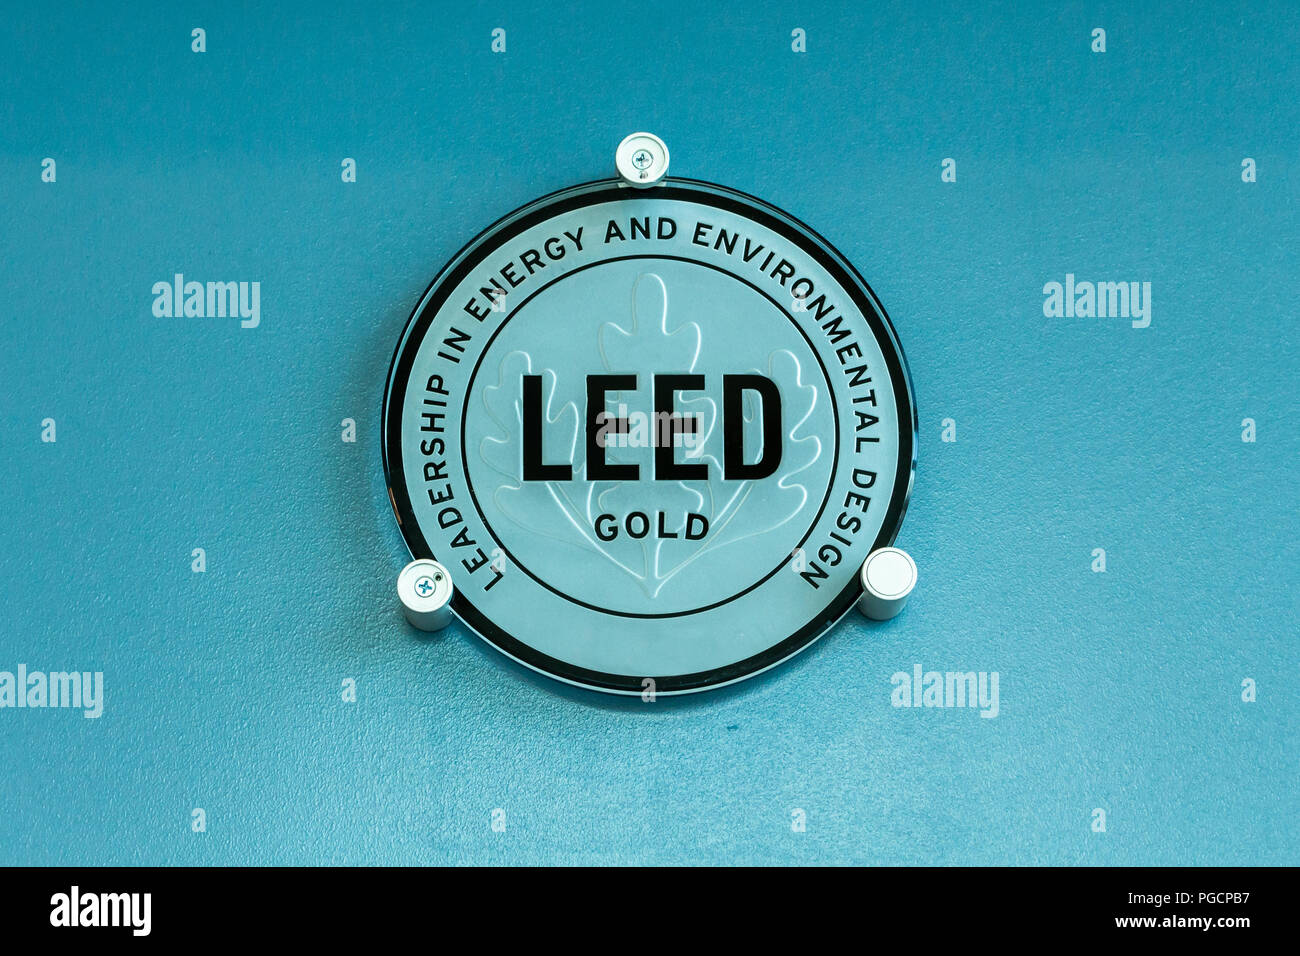 Leed Certification Stock Photos Leed Certification Stock Images